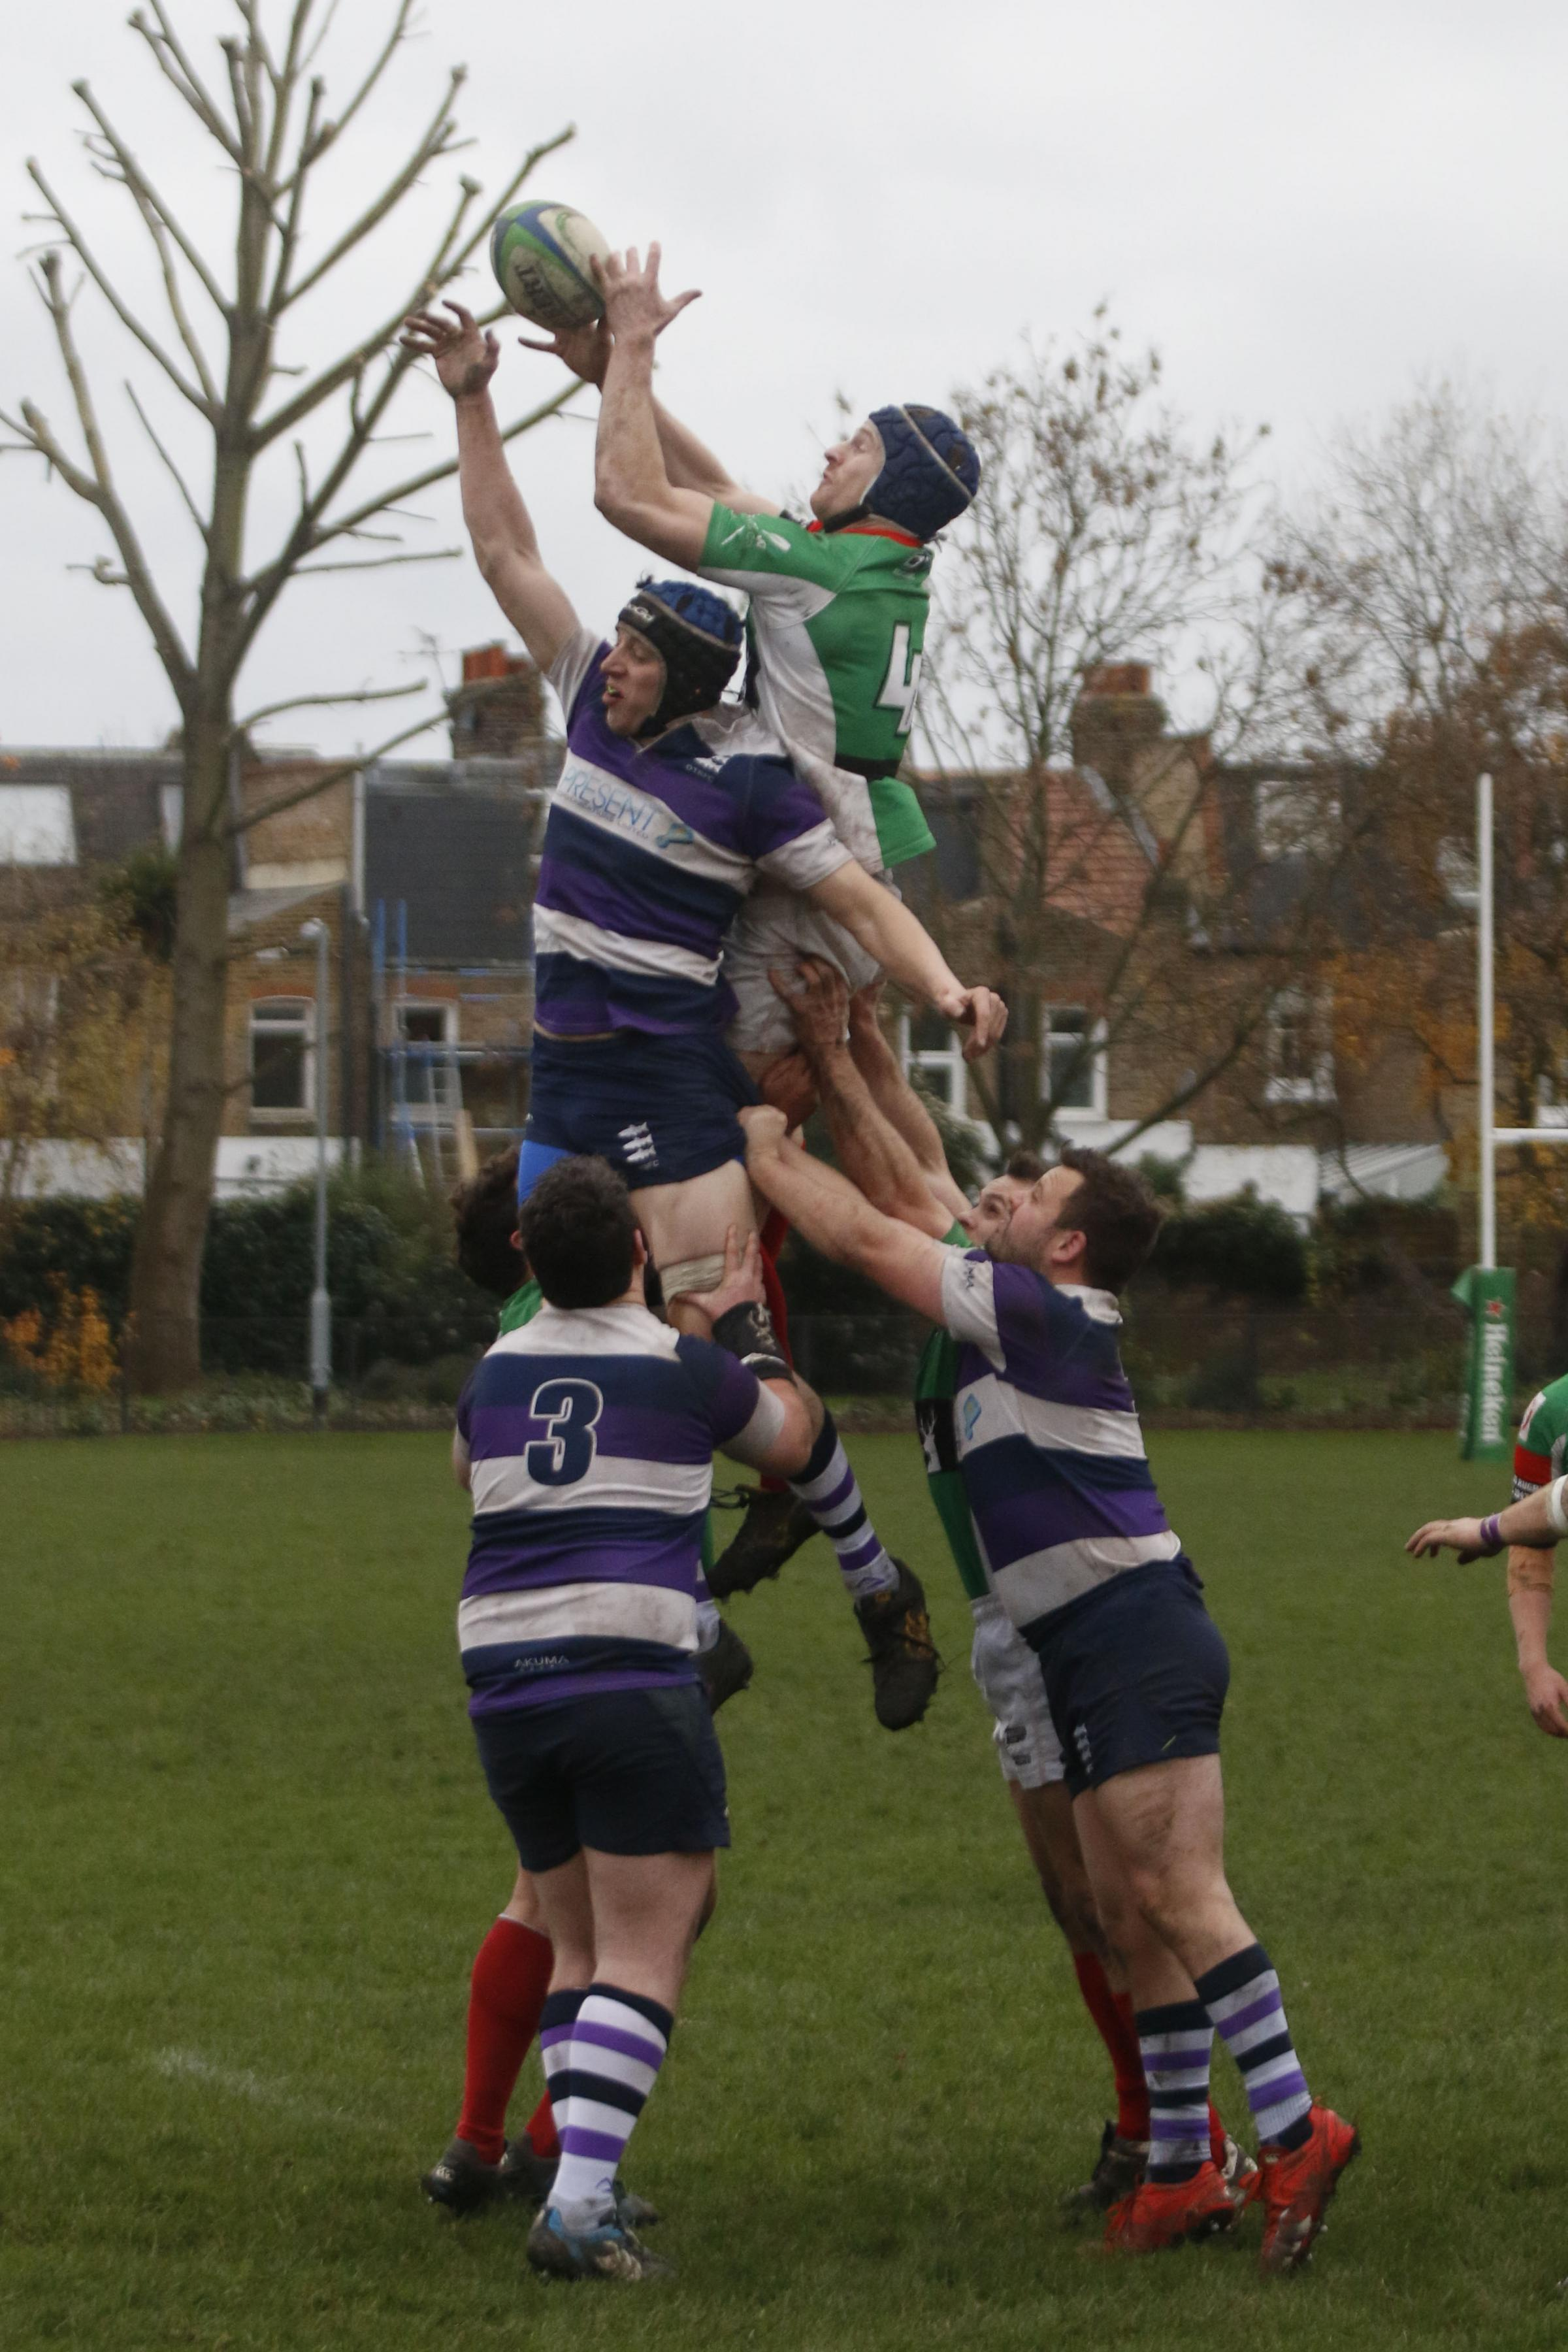 Reaching new heights: Duncan Madden gets up highest to claim a Battersea Ironsides line-out during the weekend win over Old Tiffinians  		              SP94644